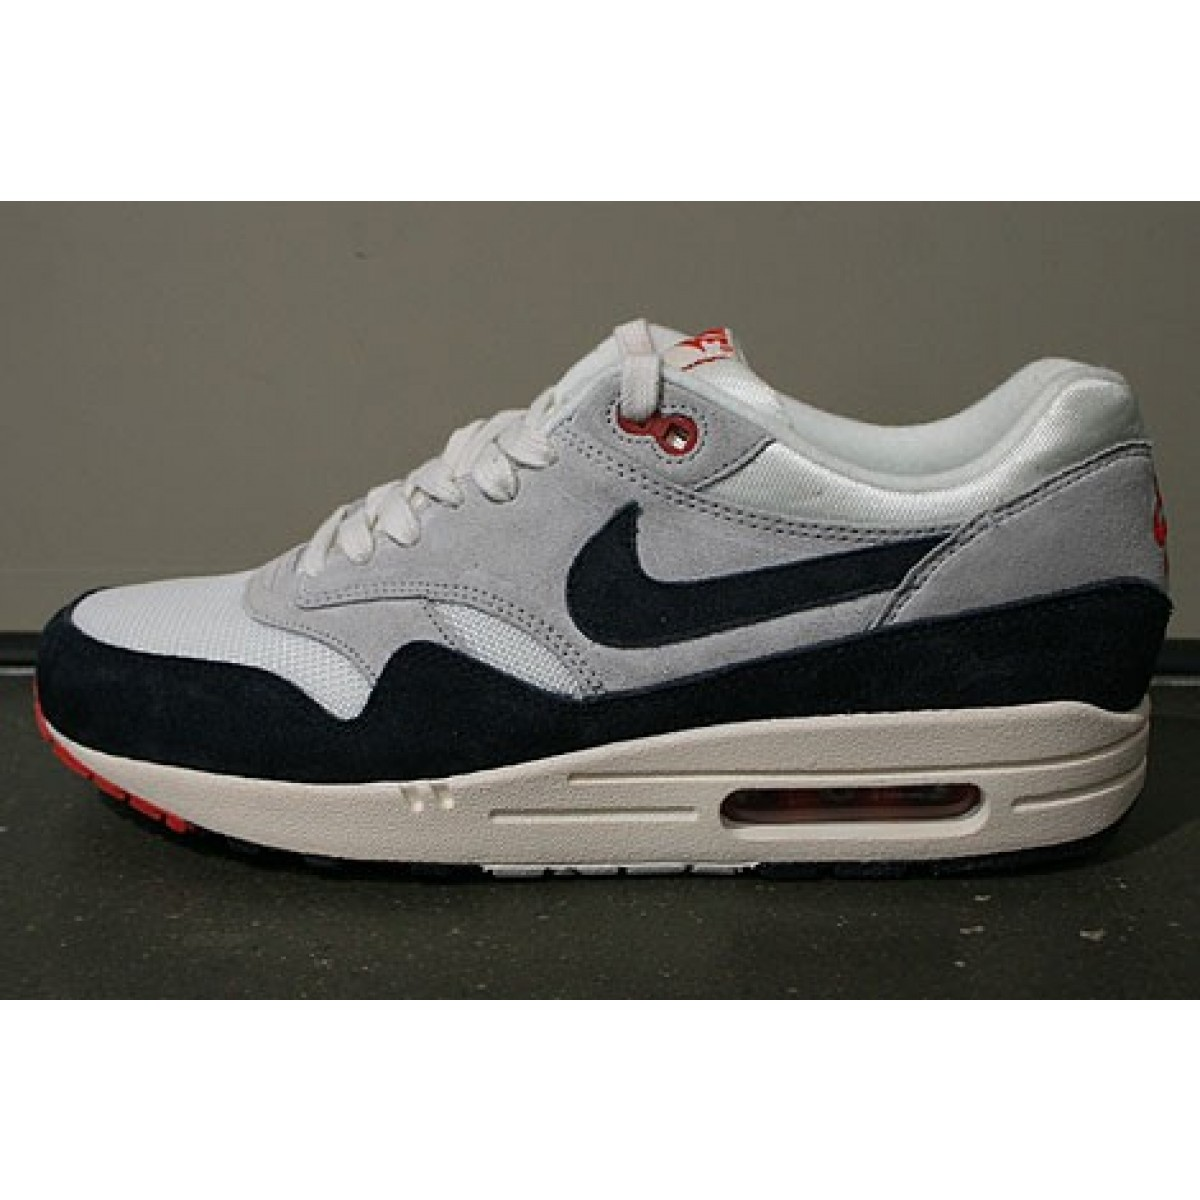 nike air max 1 pas cher pour homme,Officiel Nike Air Max 1 OG Red 2017 Chaussures Nike 2018 Pas Cher